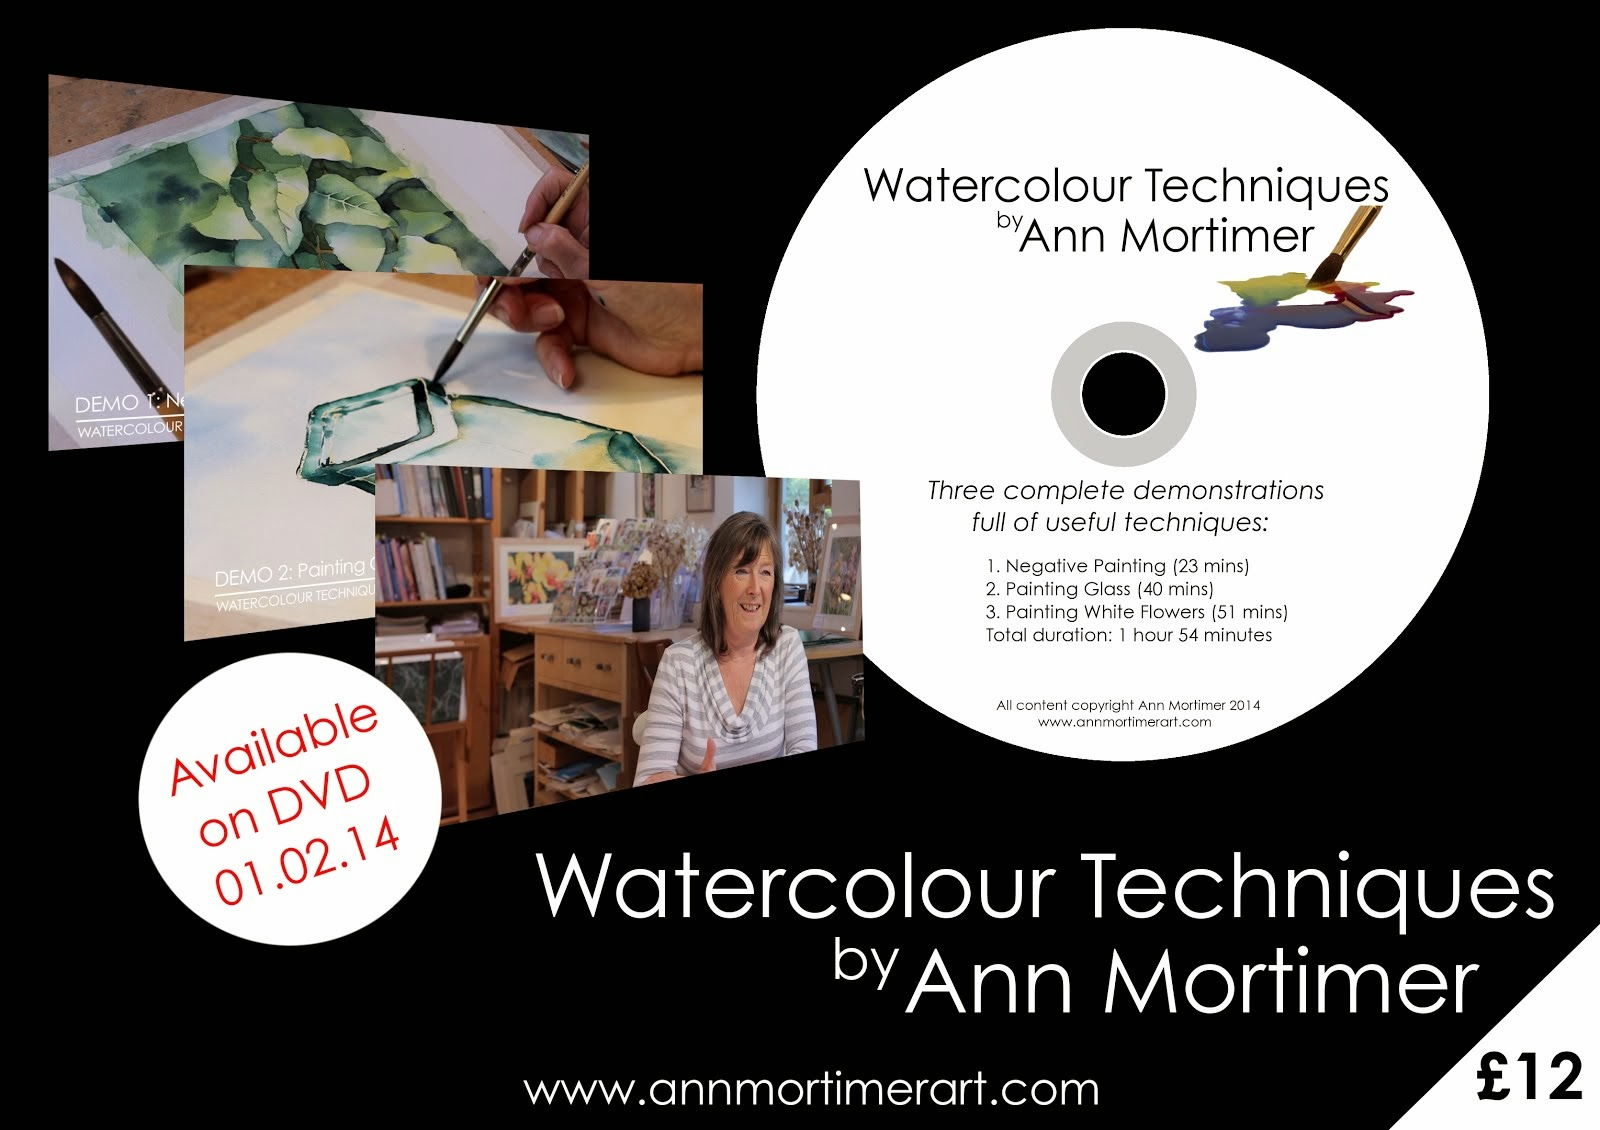 DVD Watercolour Techniques by Ann Mortimer